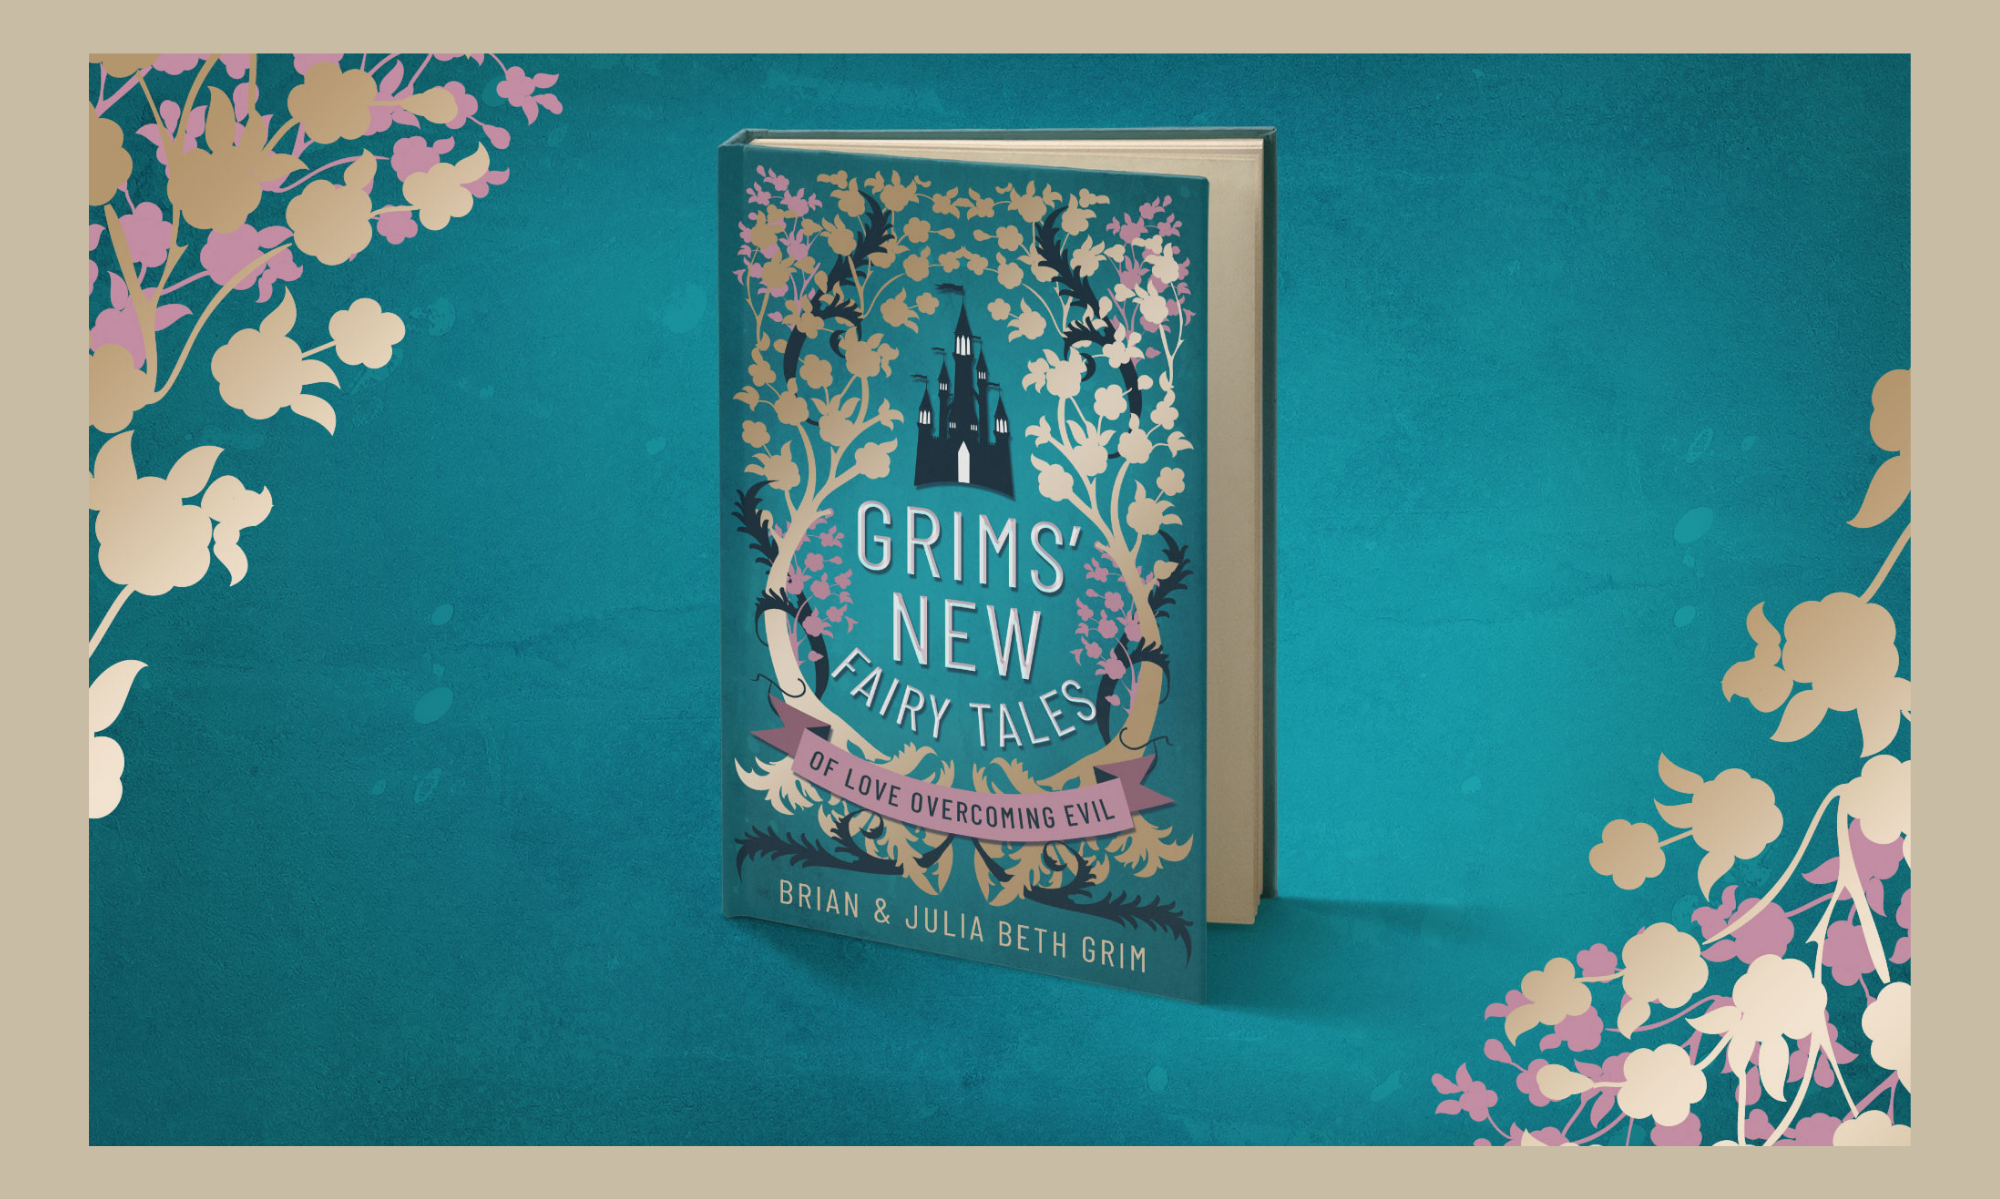 Grims' New Fairy Tales